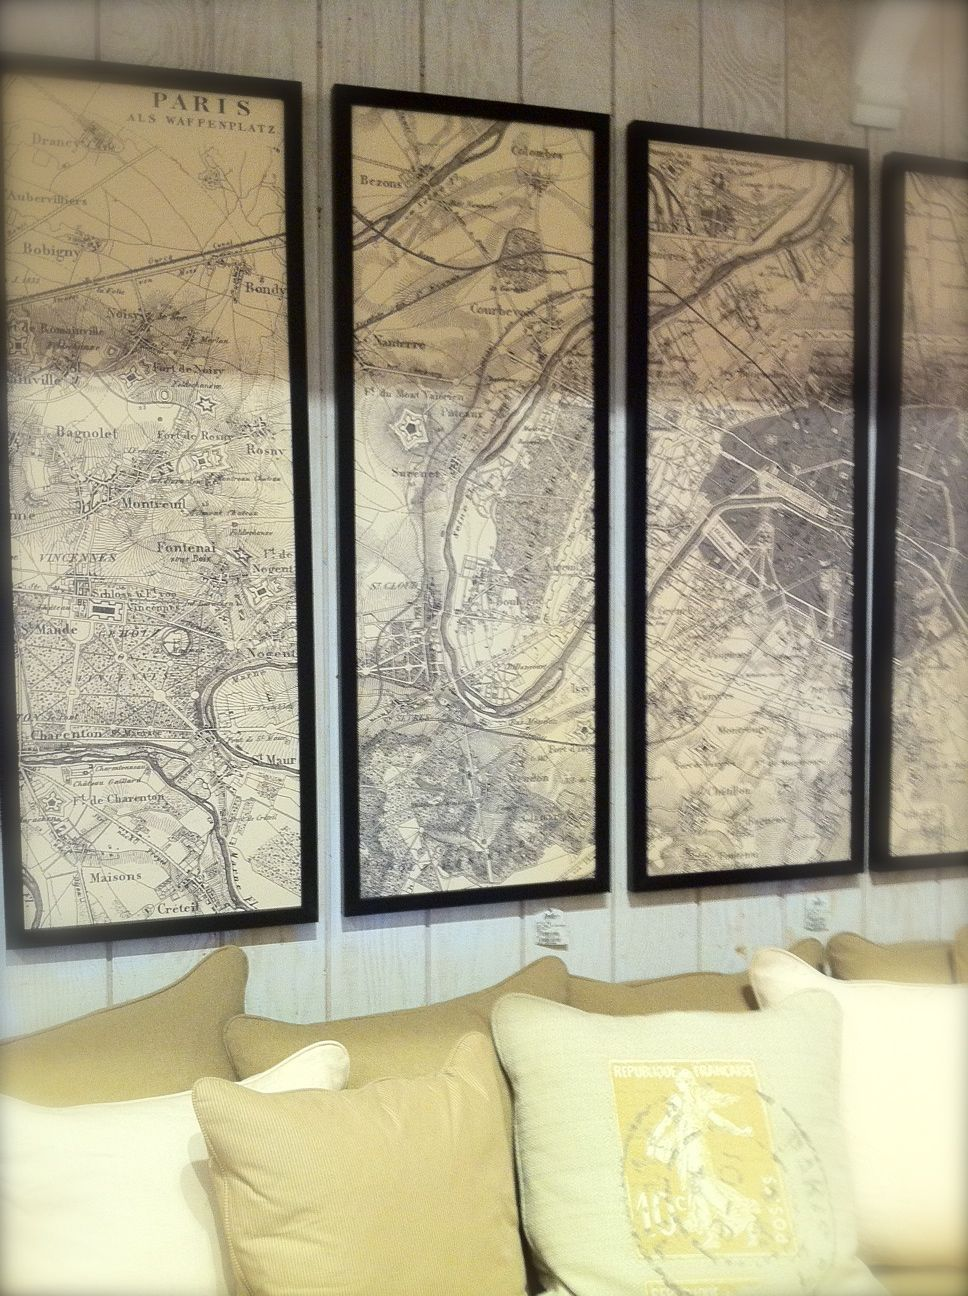 framed sections of a vintage Paris map